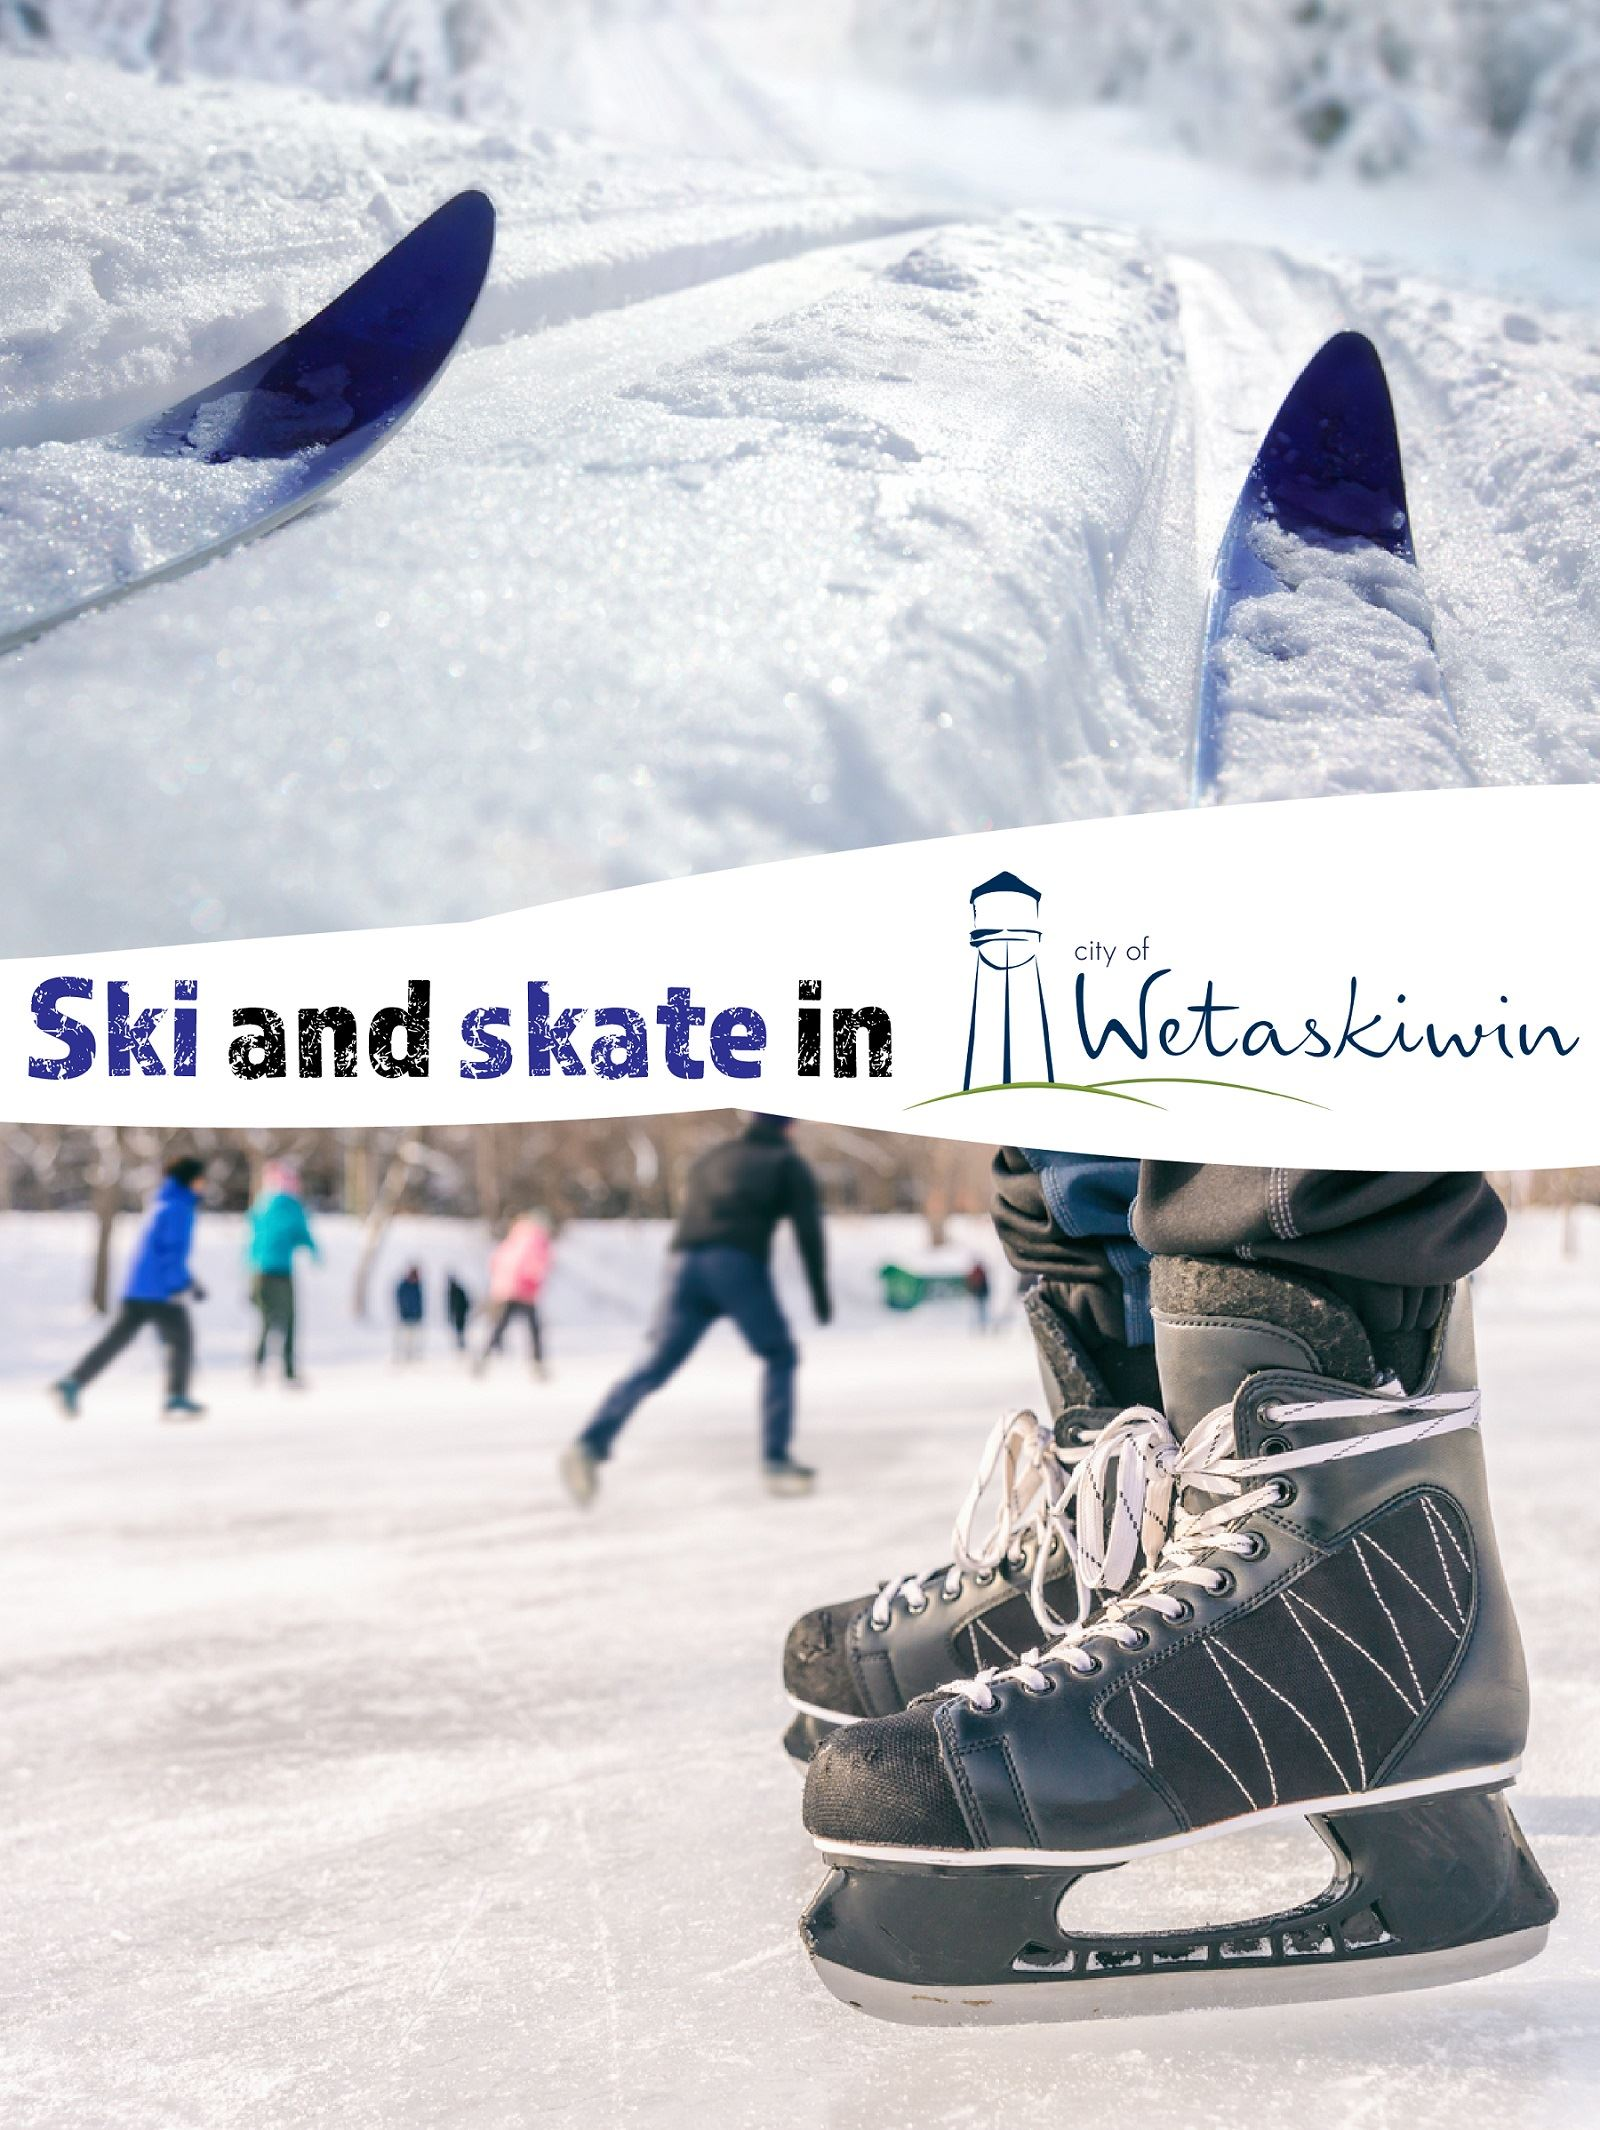 Ski and skate in Wetaskiwin-resized